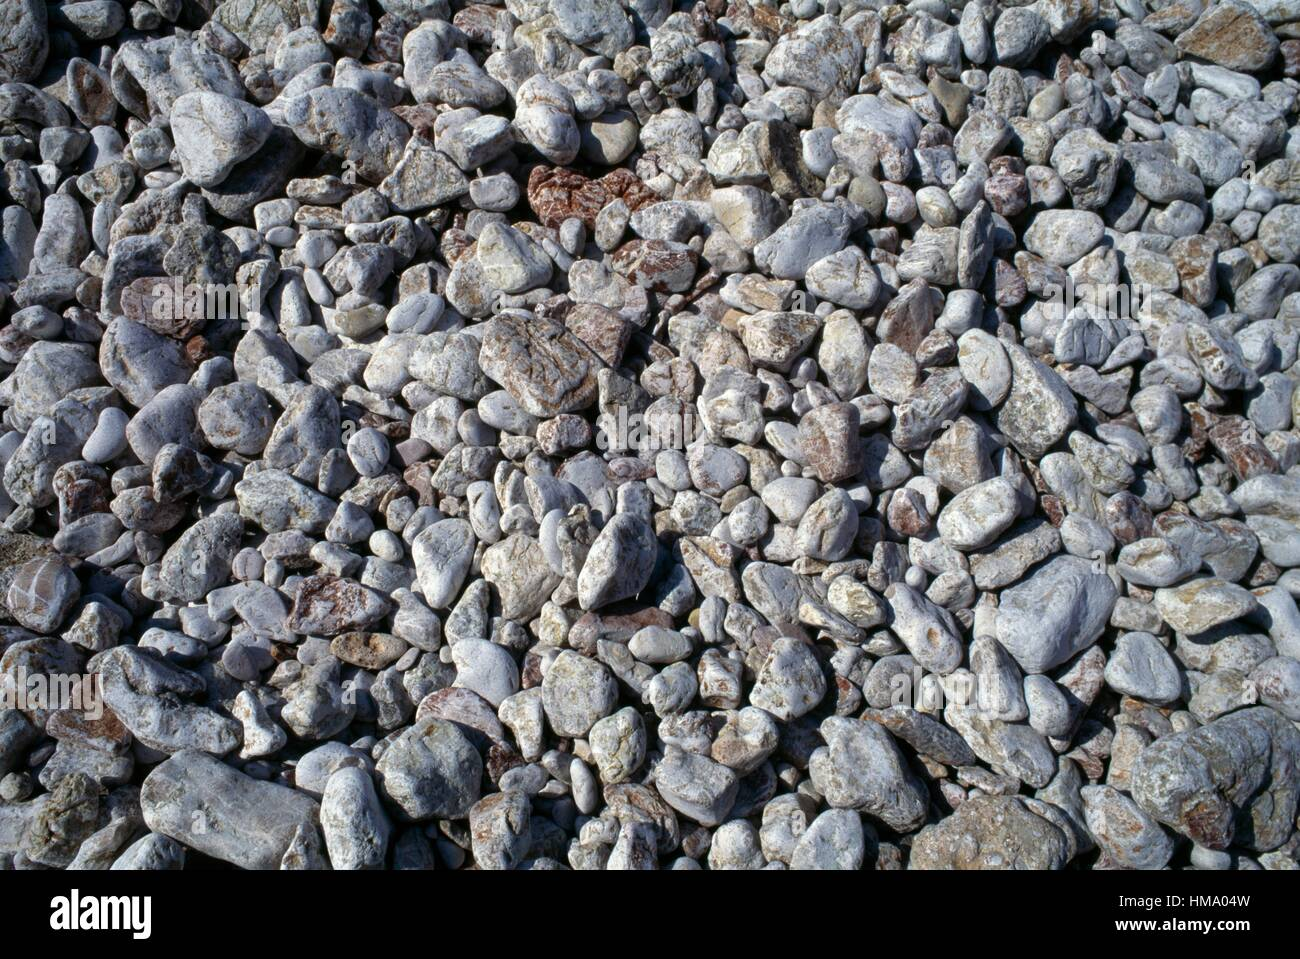 Pebbles and stones, Karpathos island, Greece. Stock Photo